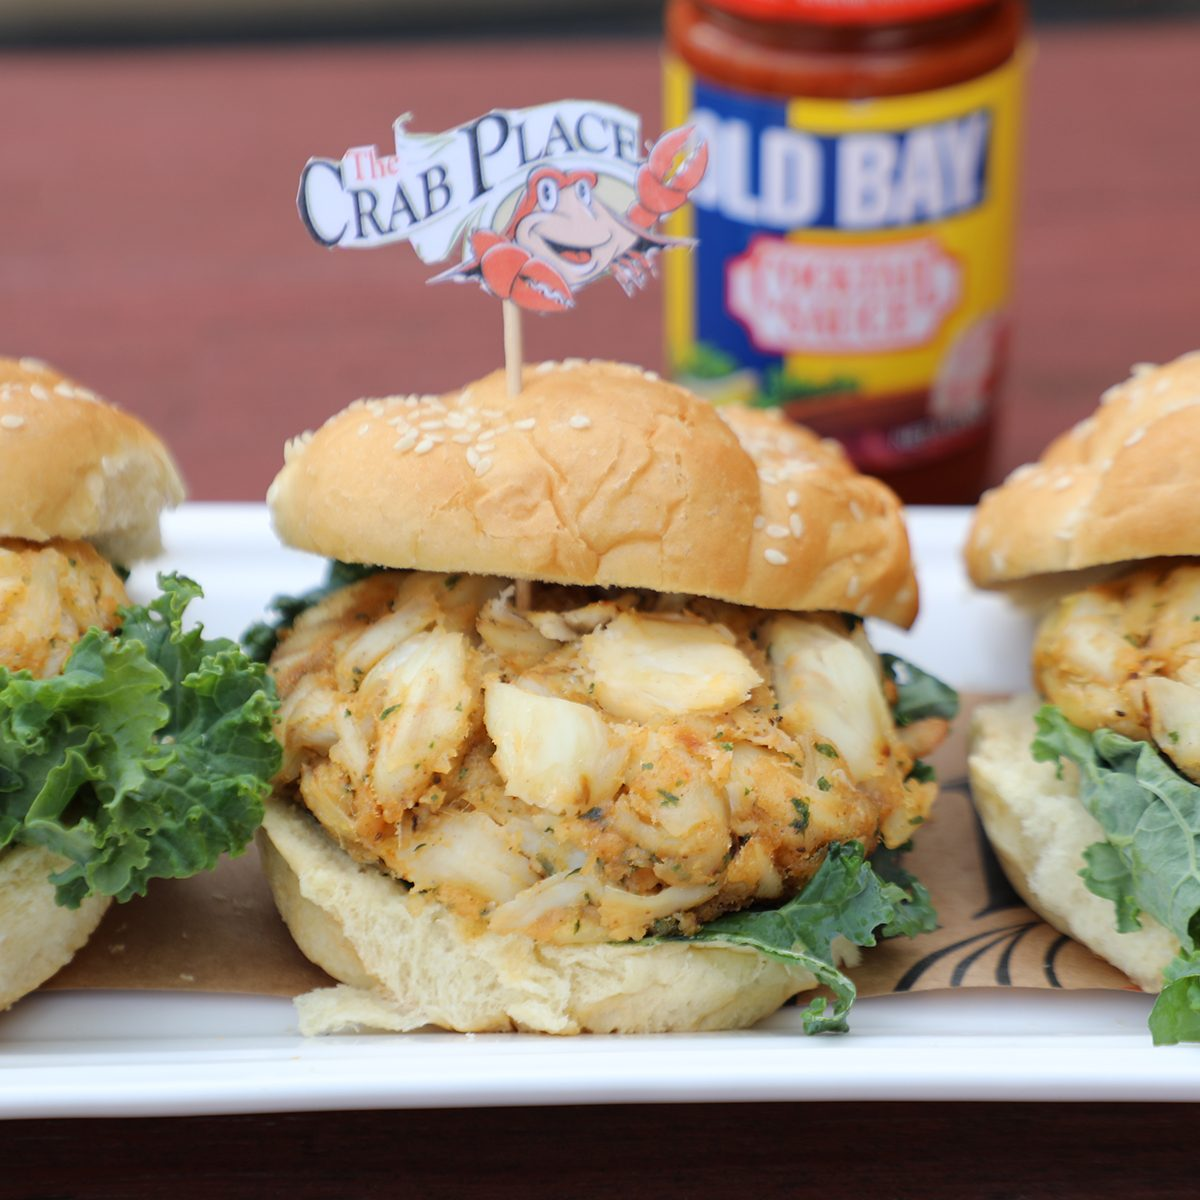 The Crab Place: Maryland Crab Cakes